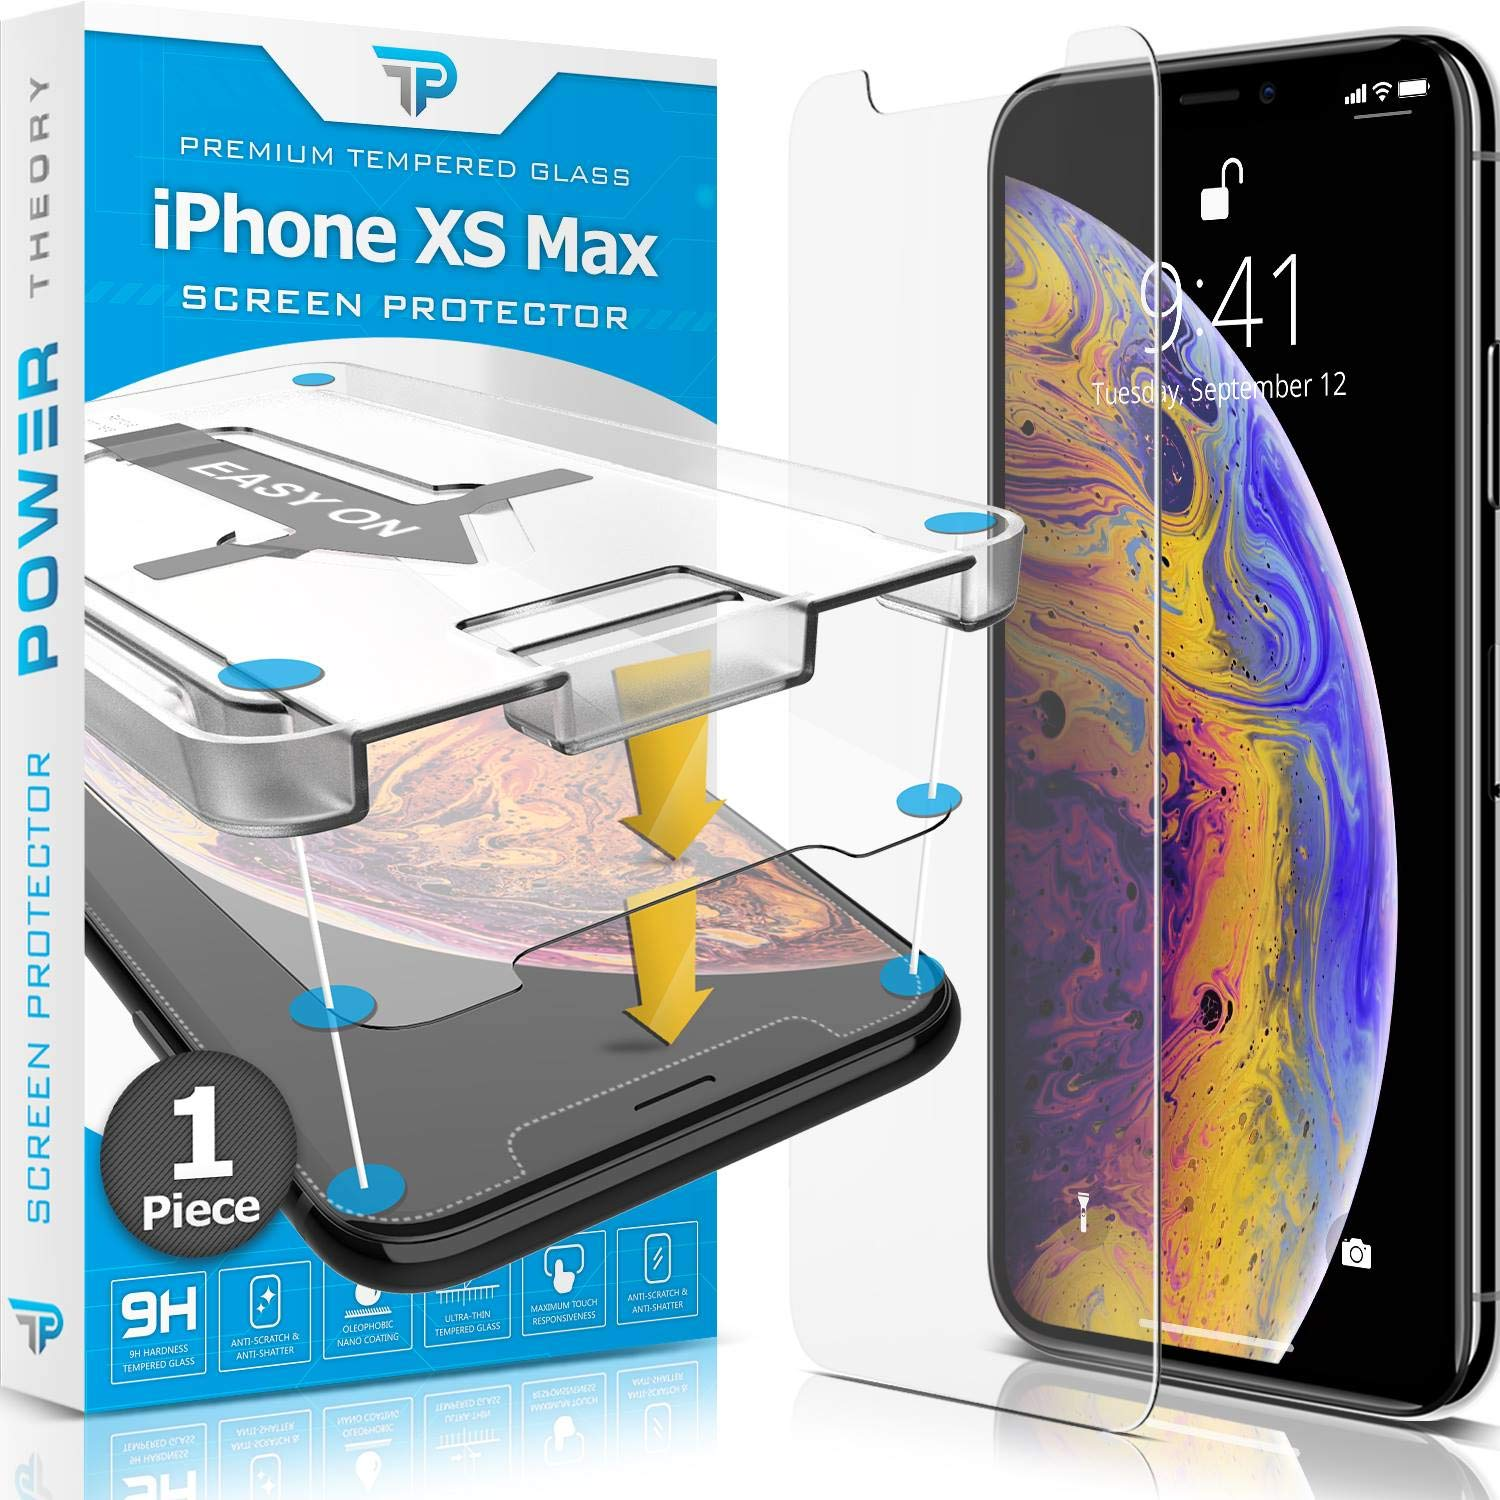 Power Theory iPhone XS Max Screen Protector [1-Pack] Premium Tempered Glass Screen Protectors with Easy App Install Kit for Apple iPhoneXS Max